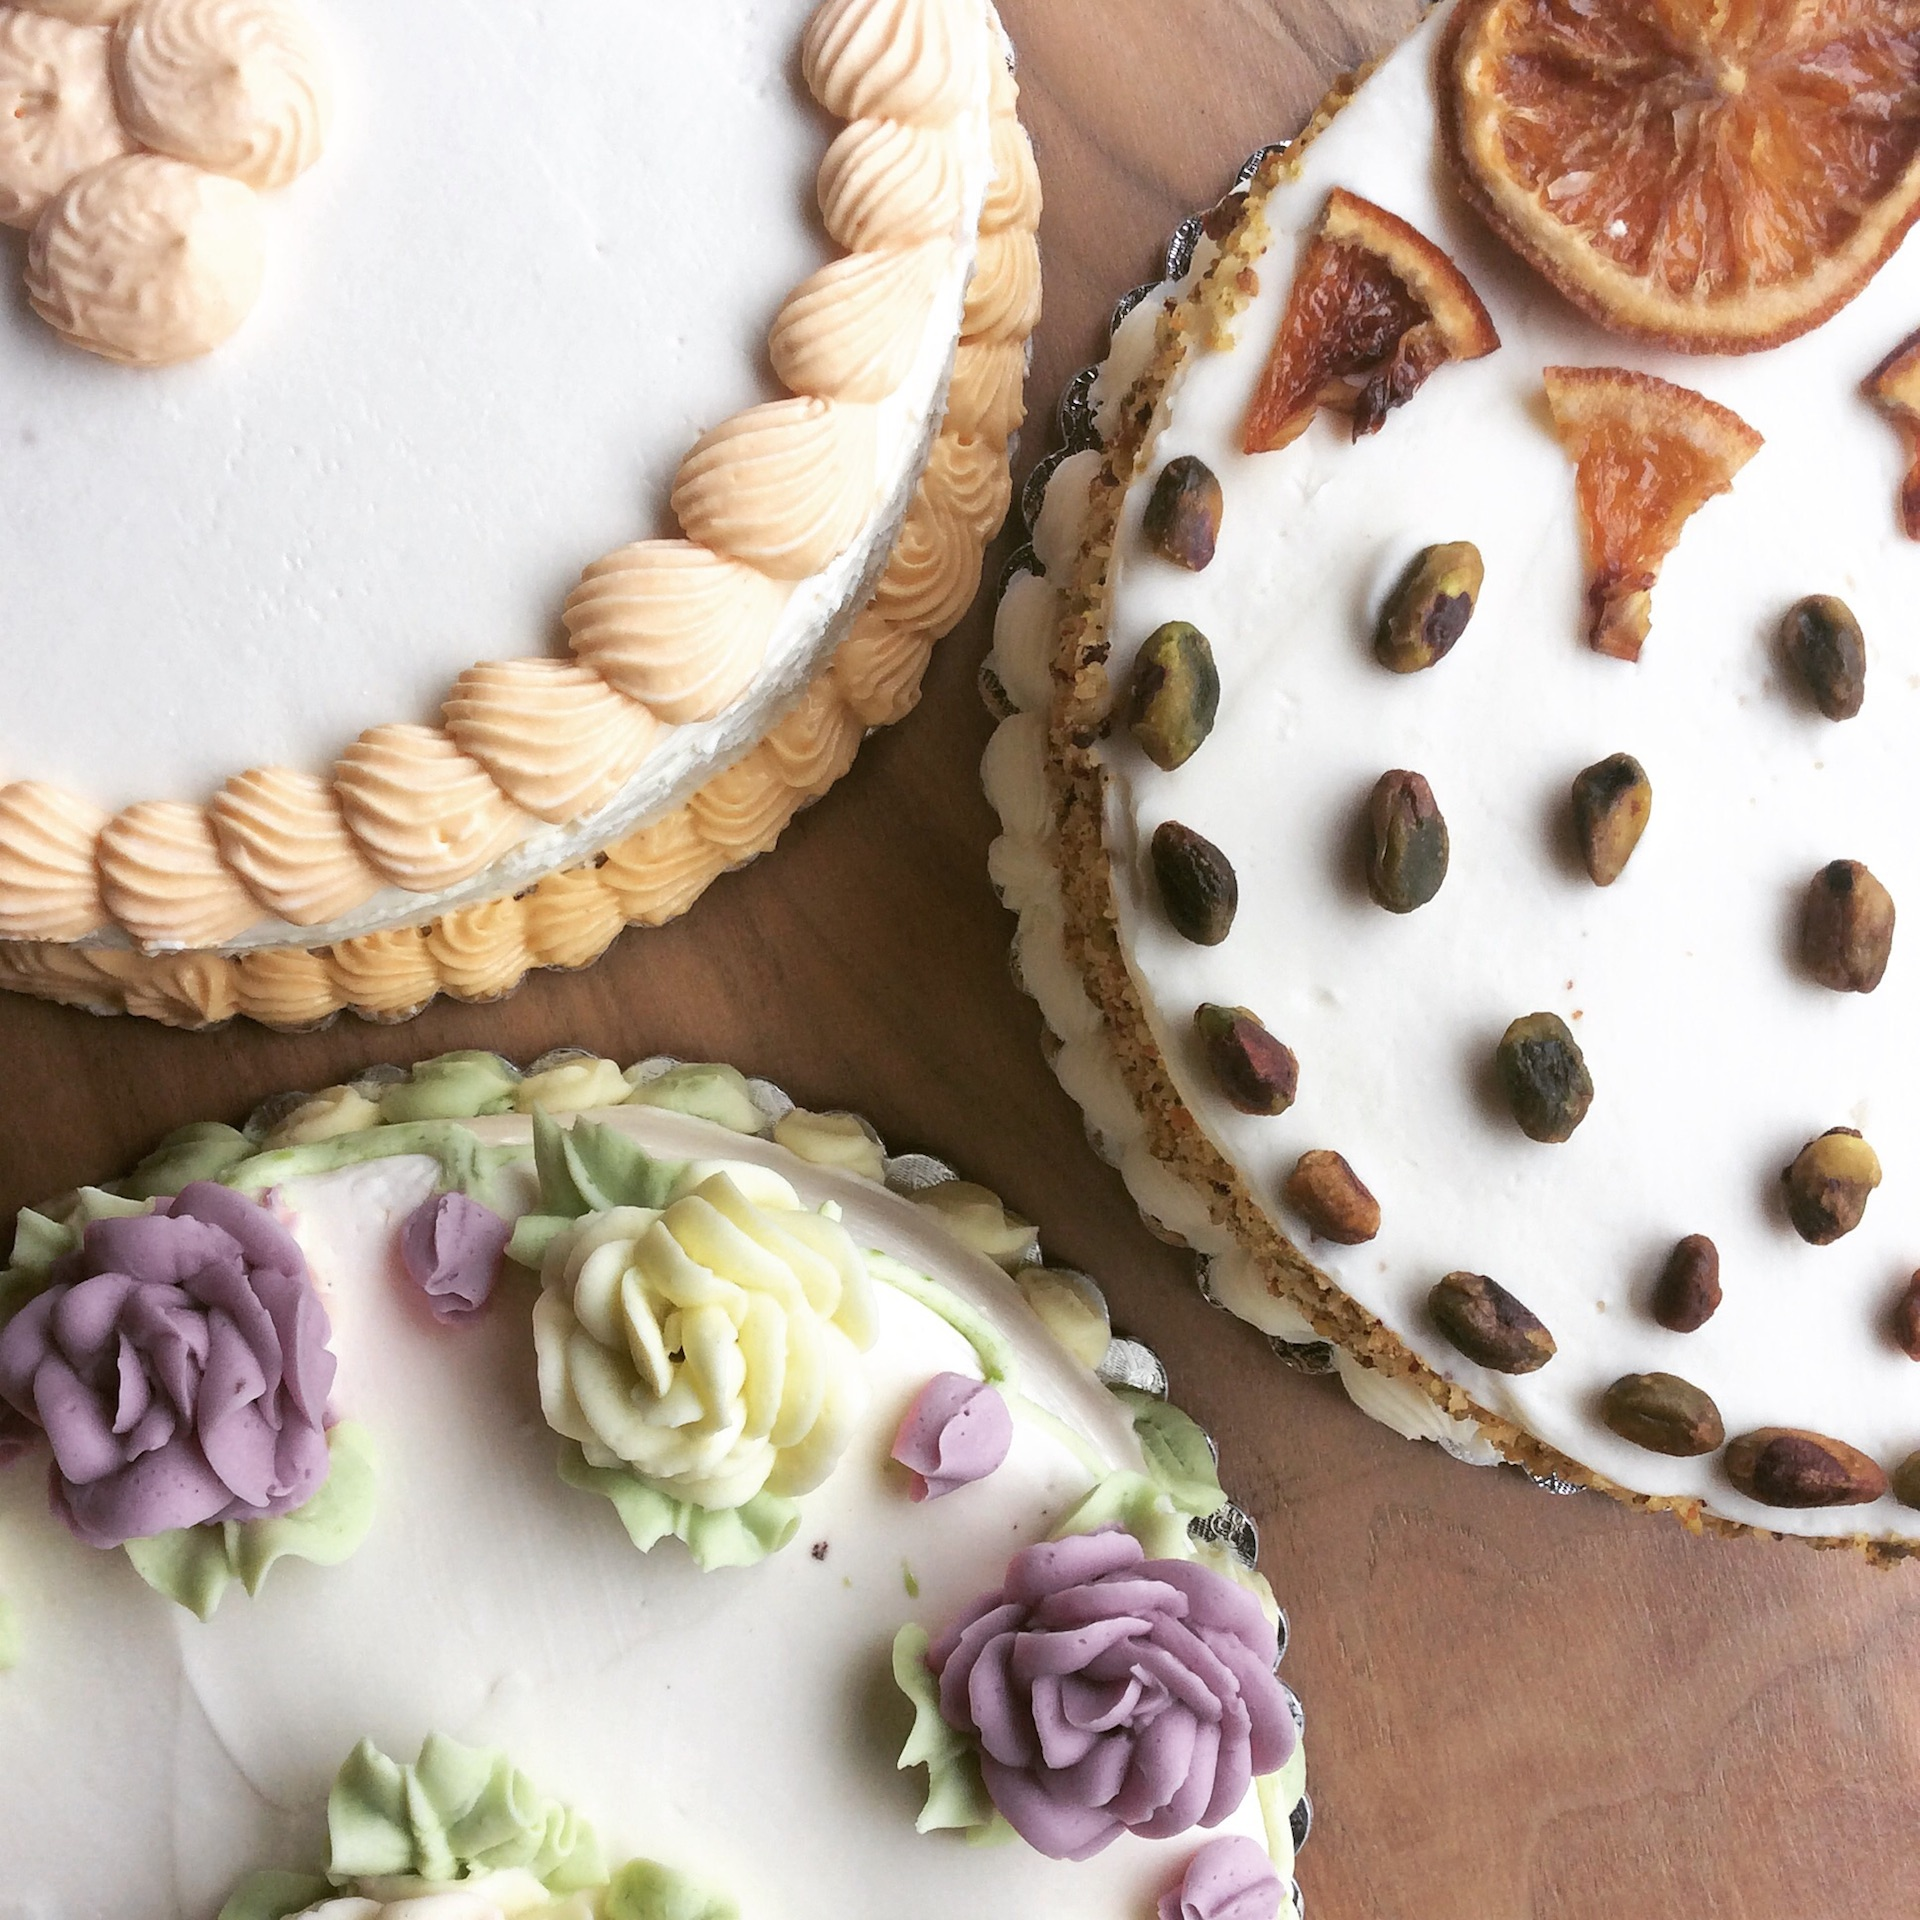 5 Dedicated Gluten Free Bakeries Around The Bay Area